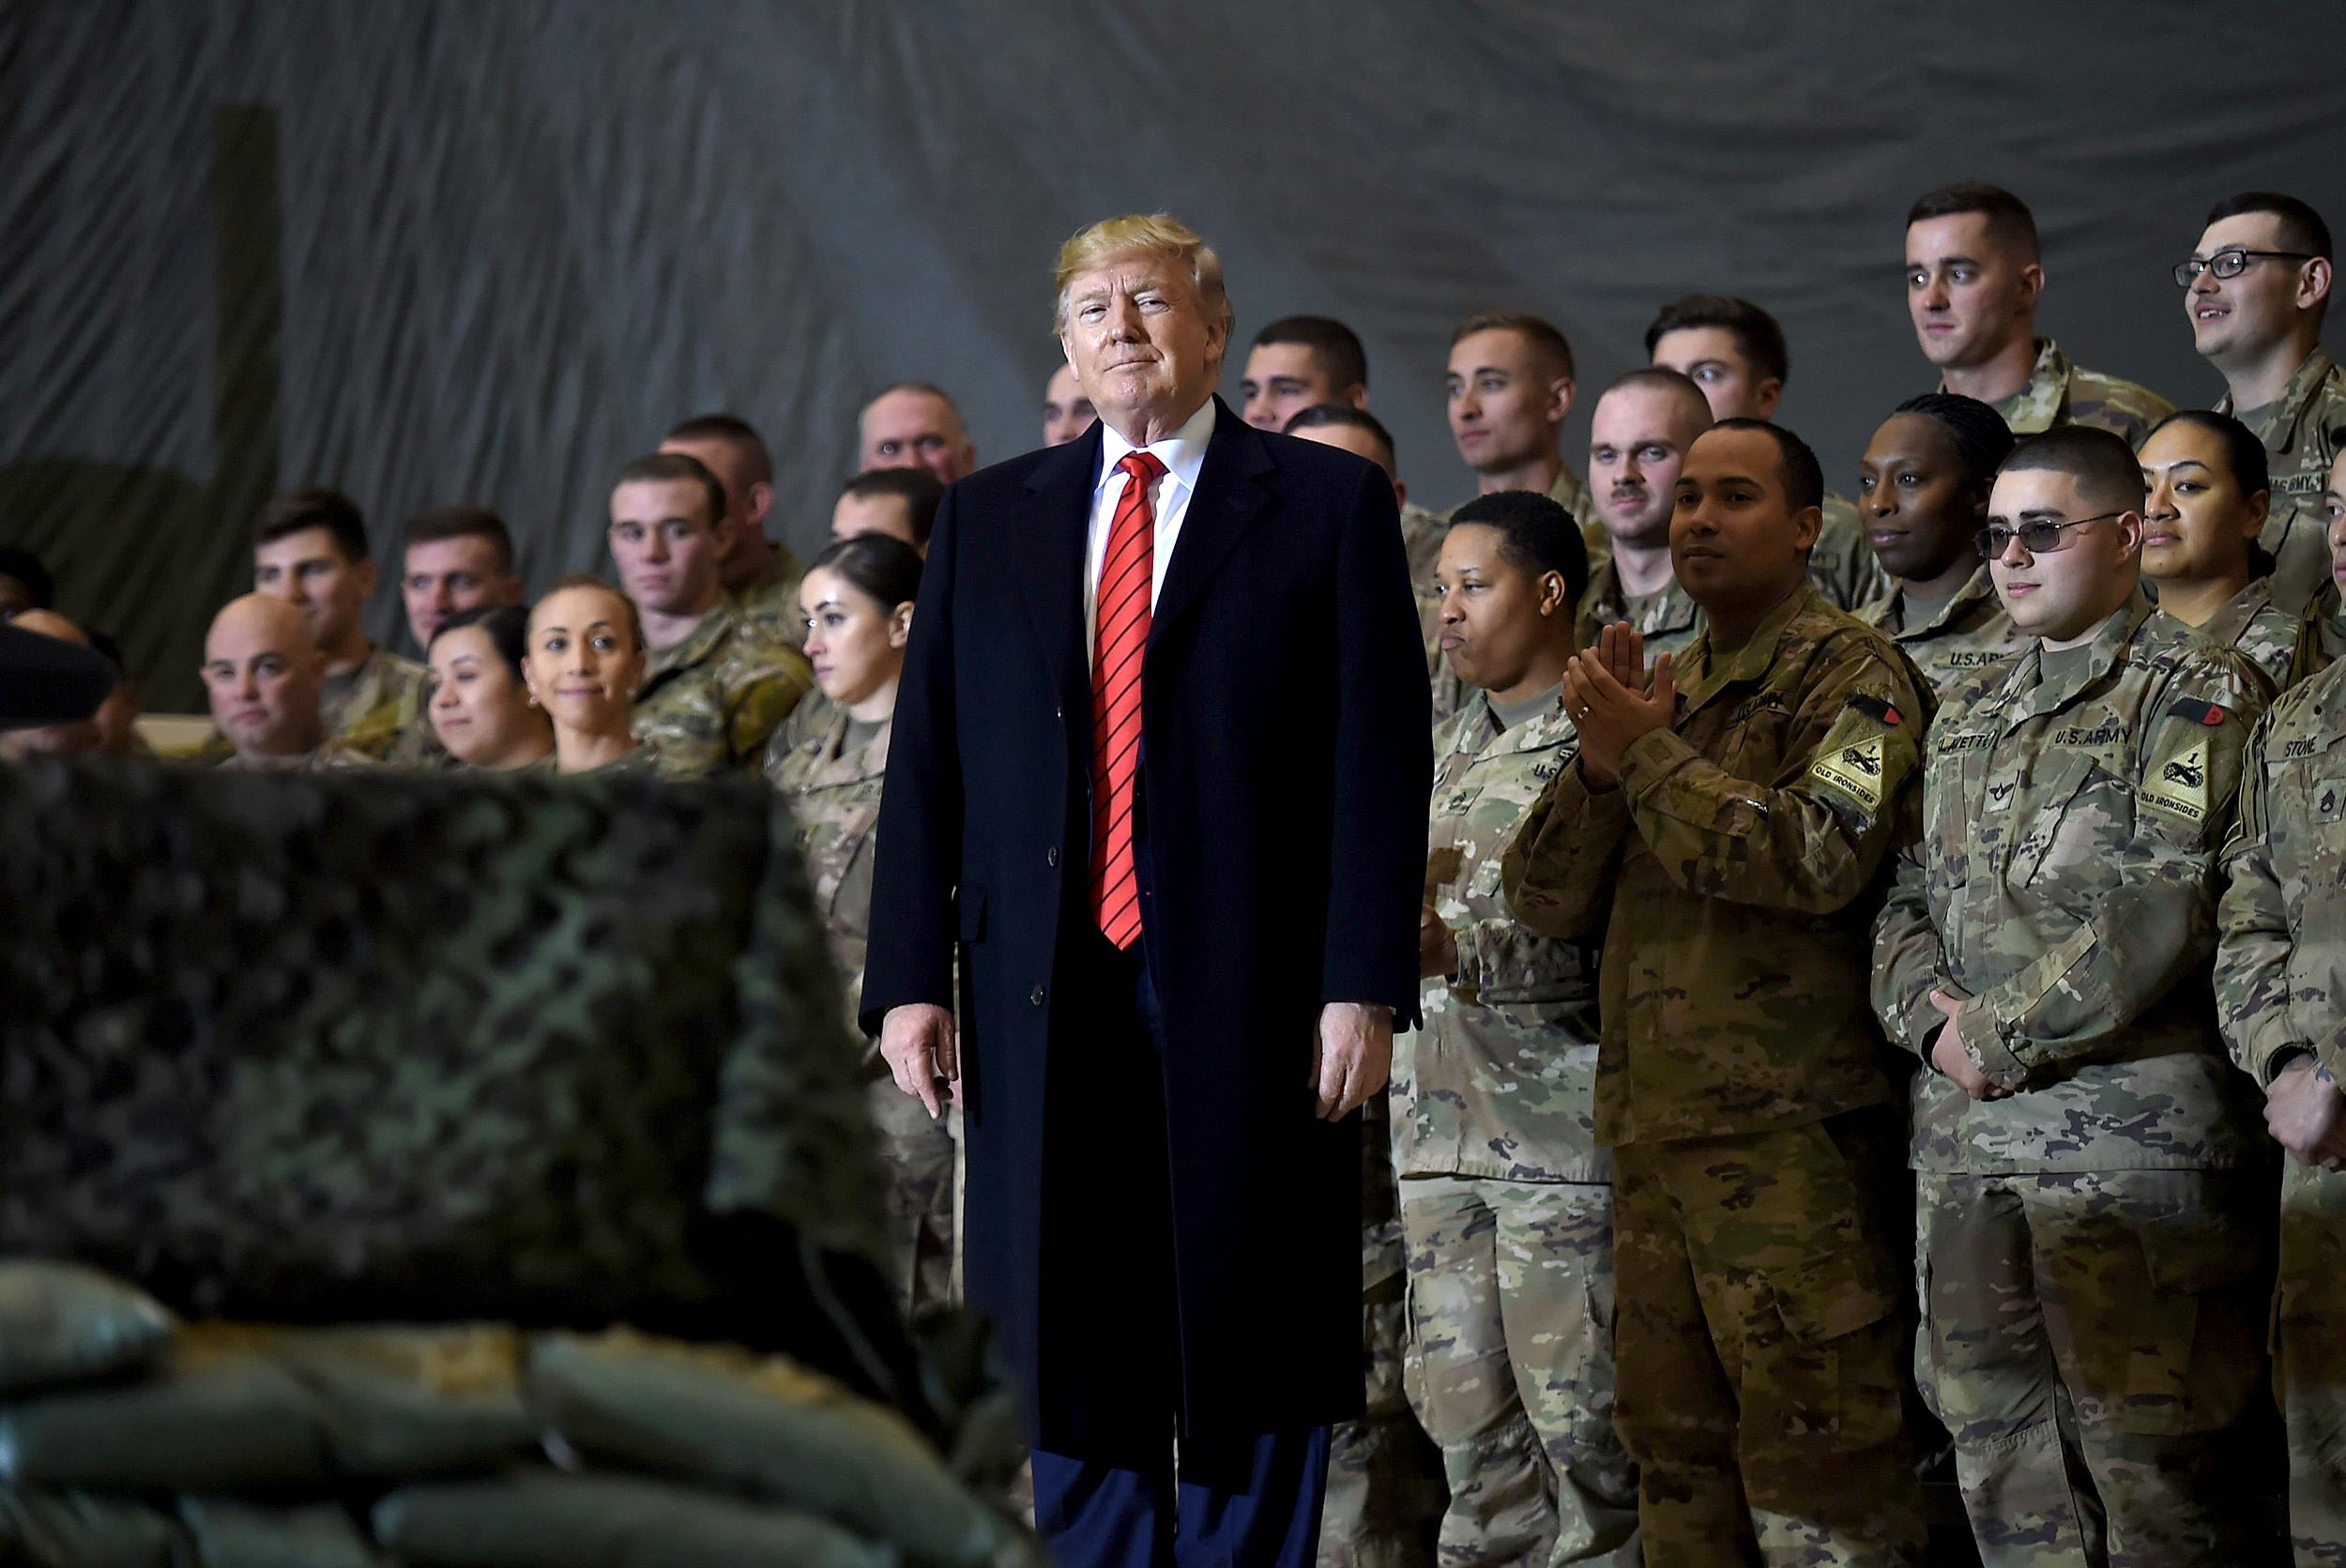 White House denies report claiming Trump called dead American soldiers 'losers' and 'suckers'